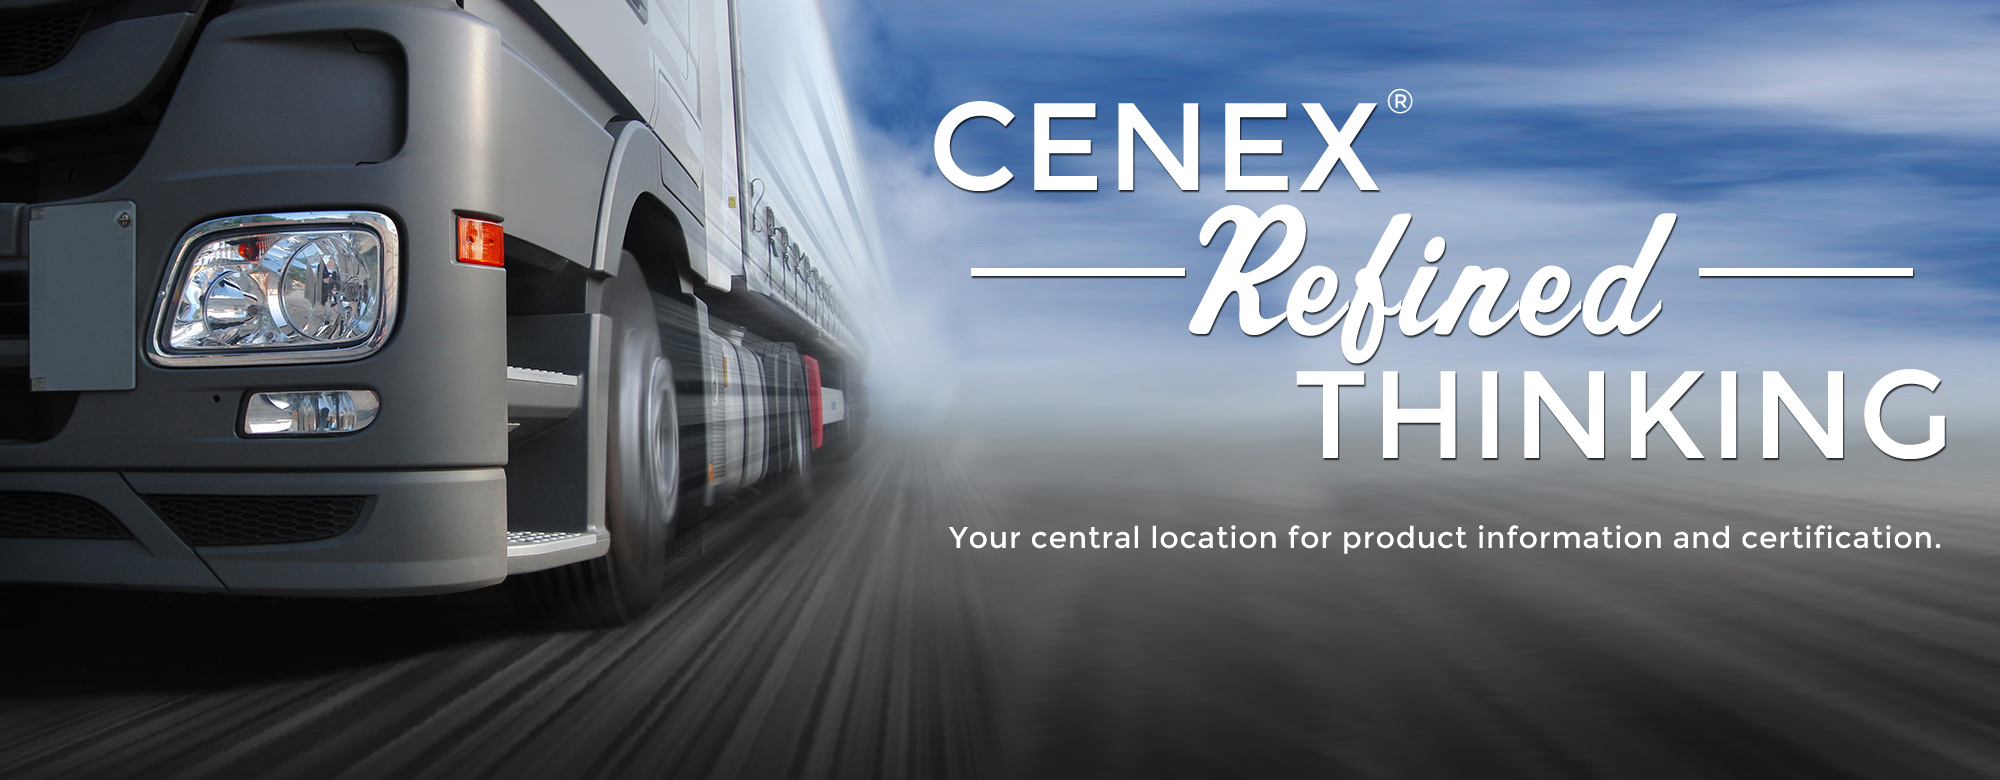 Cenex Refined Thinking - Your central location for product information and certification